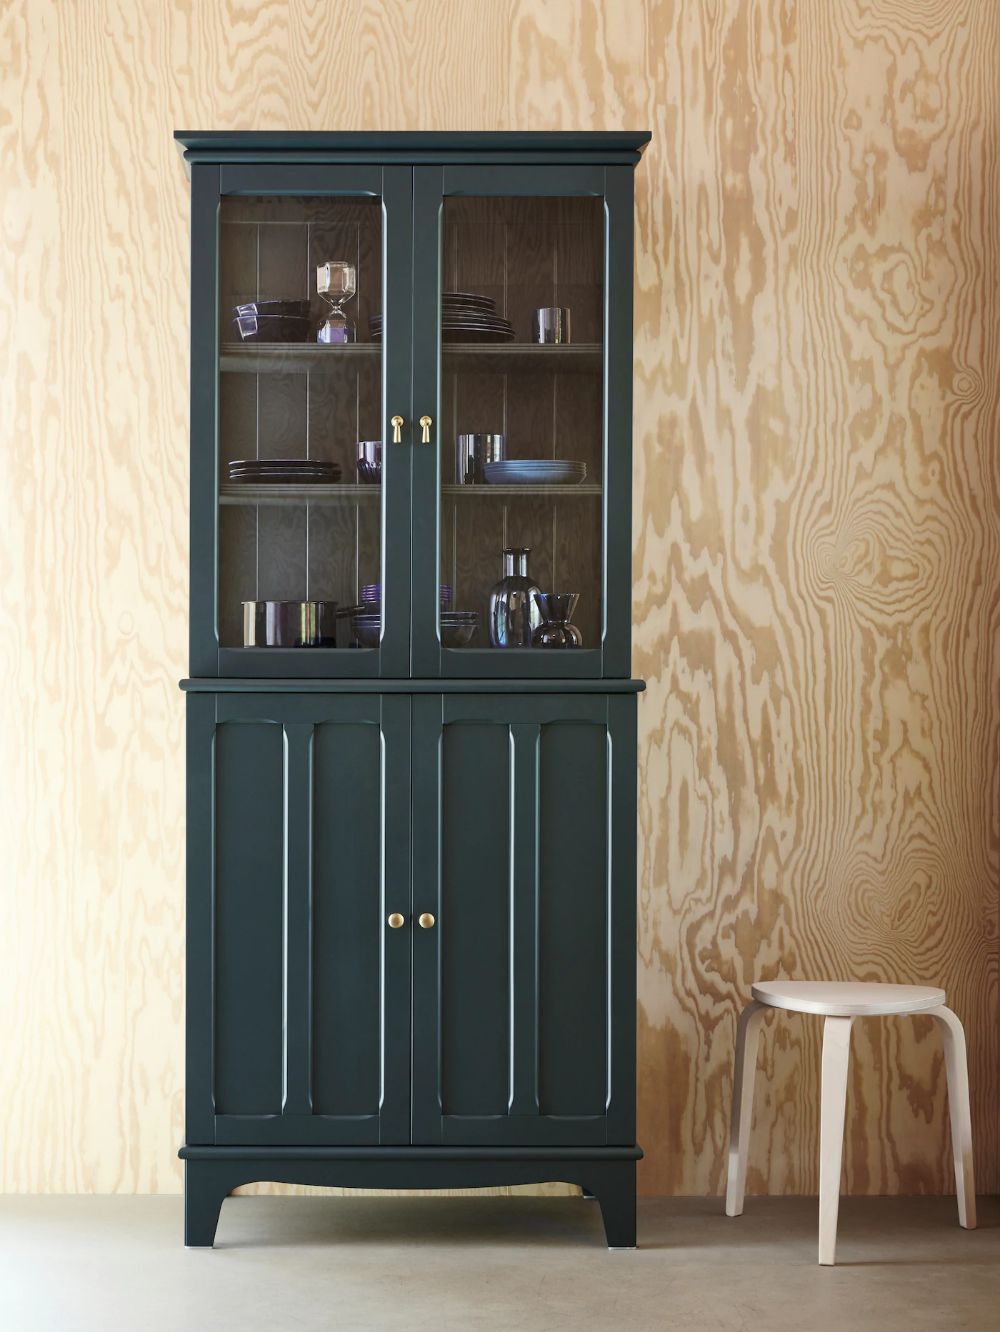 Spacious Storage That S Big On Details Ikea Glass Cabinet Doors Glass Door Ikea Storage cabinets with glass doors